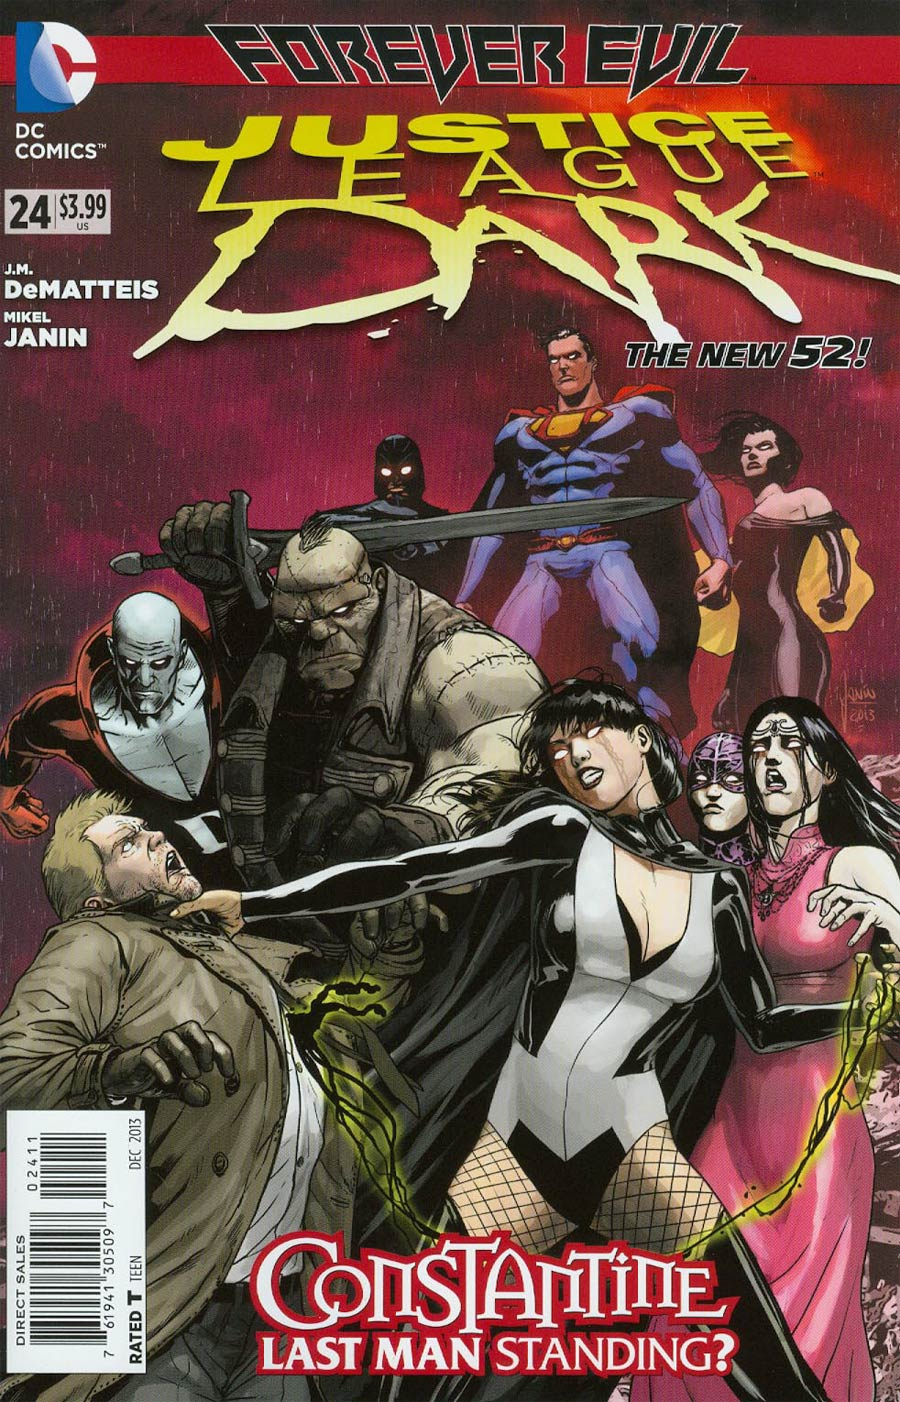 Justice League Dark #24 Cover A Regular Mikel Janin Cover (Forever Evil Tie-In)